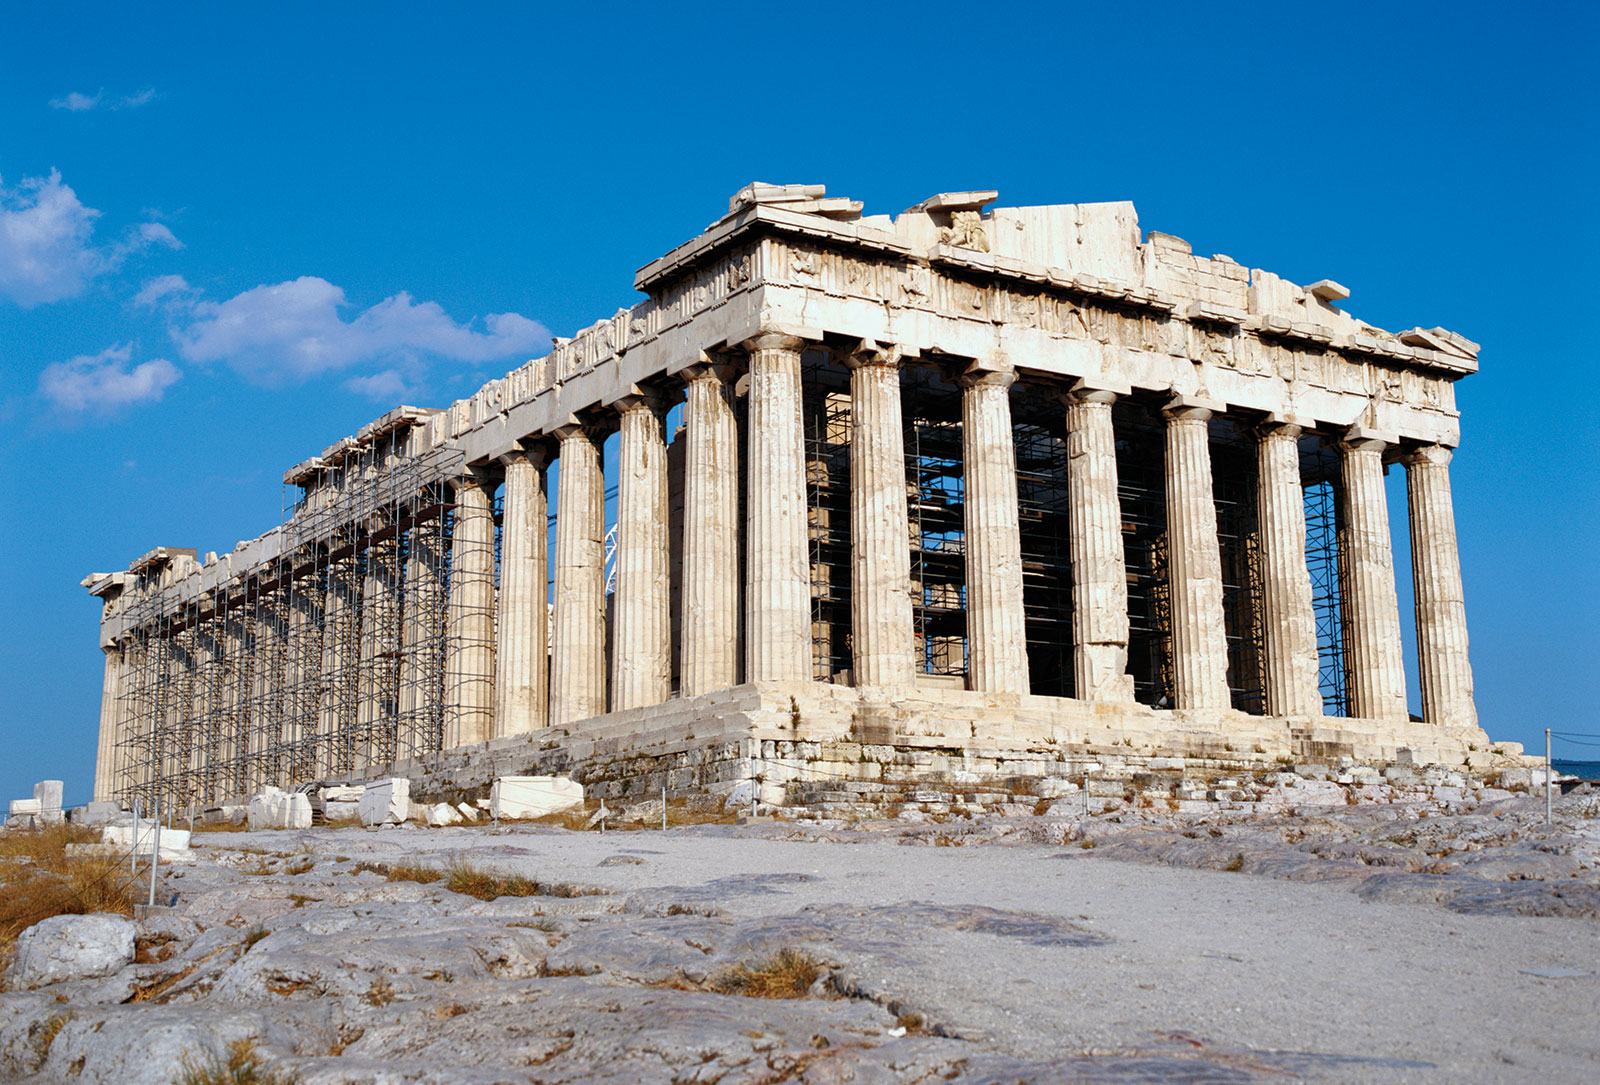 This is the ruins of the Greek Parthenon in Athens signifying the majesty of a once great Greek civilization that included the arts and philosophy.